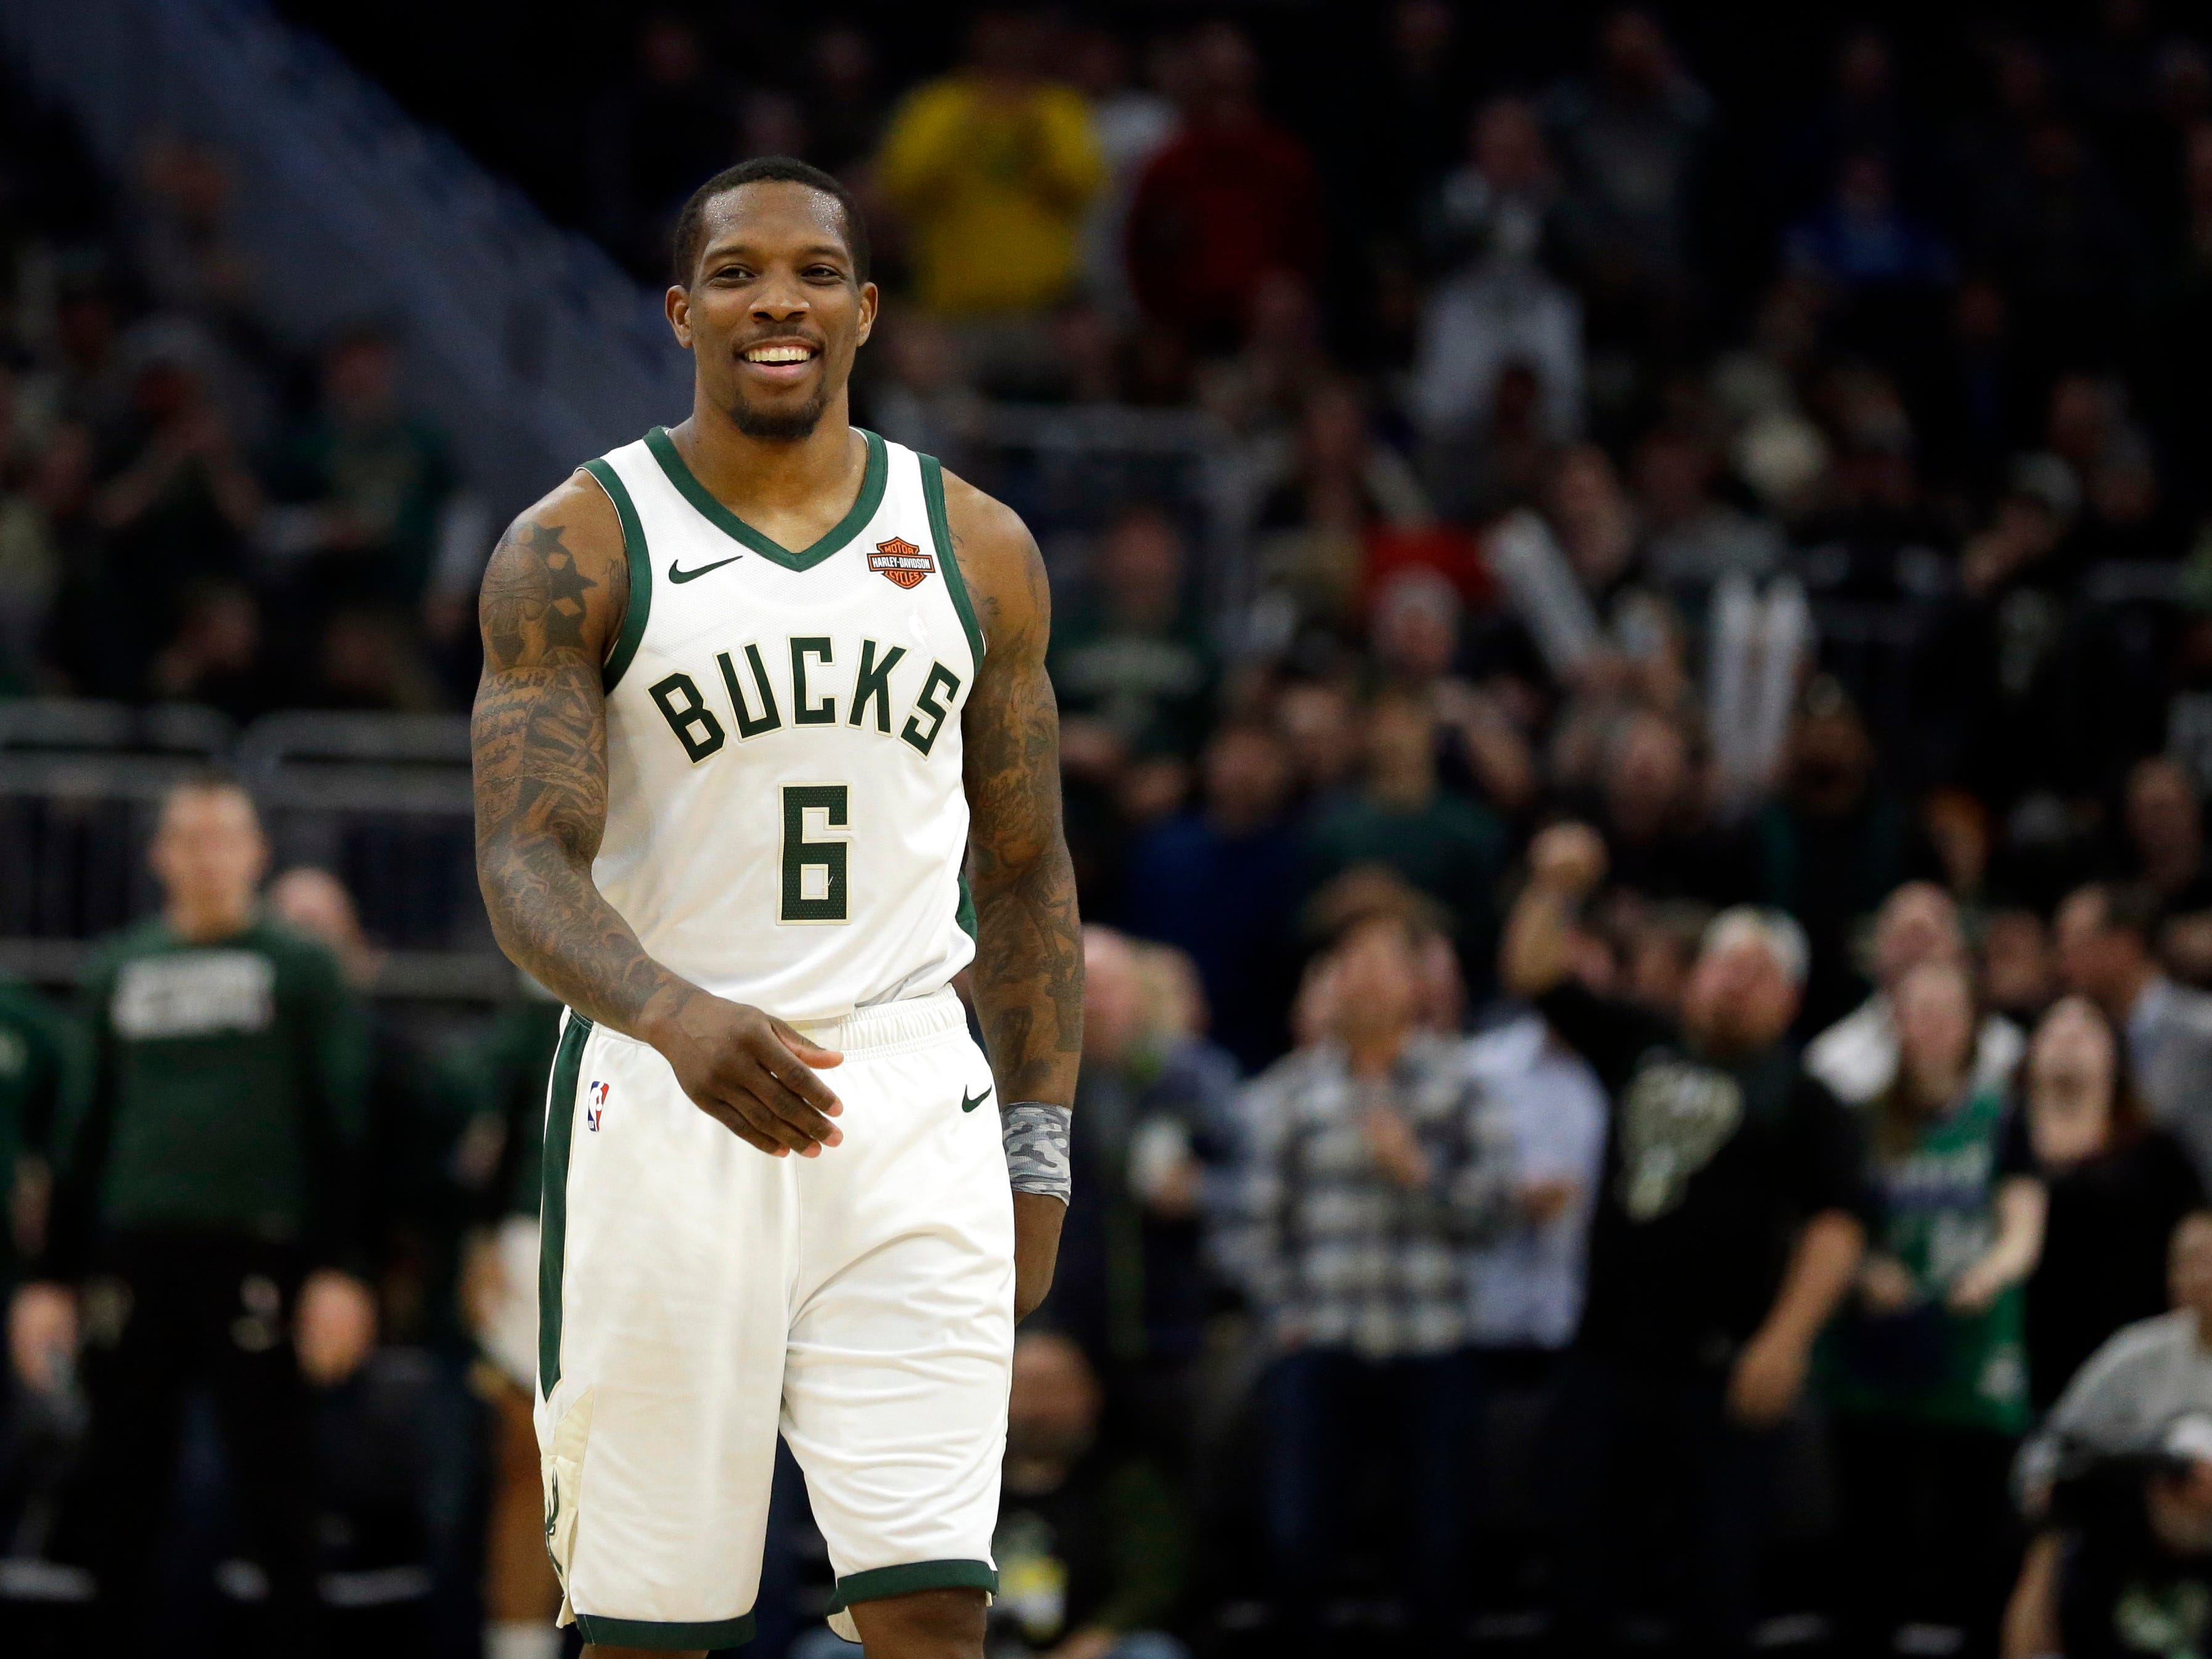 Eric Bledsoe had plenty to smile about during the Bucks' victory over the Wizards on Wednesday night as the guard scored 22 points and handed out 11 assists.